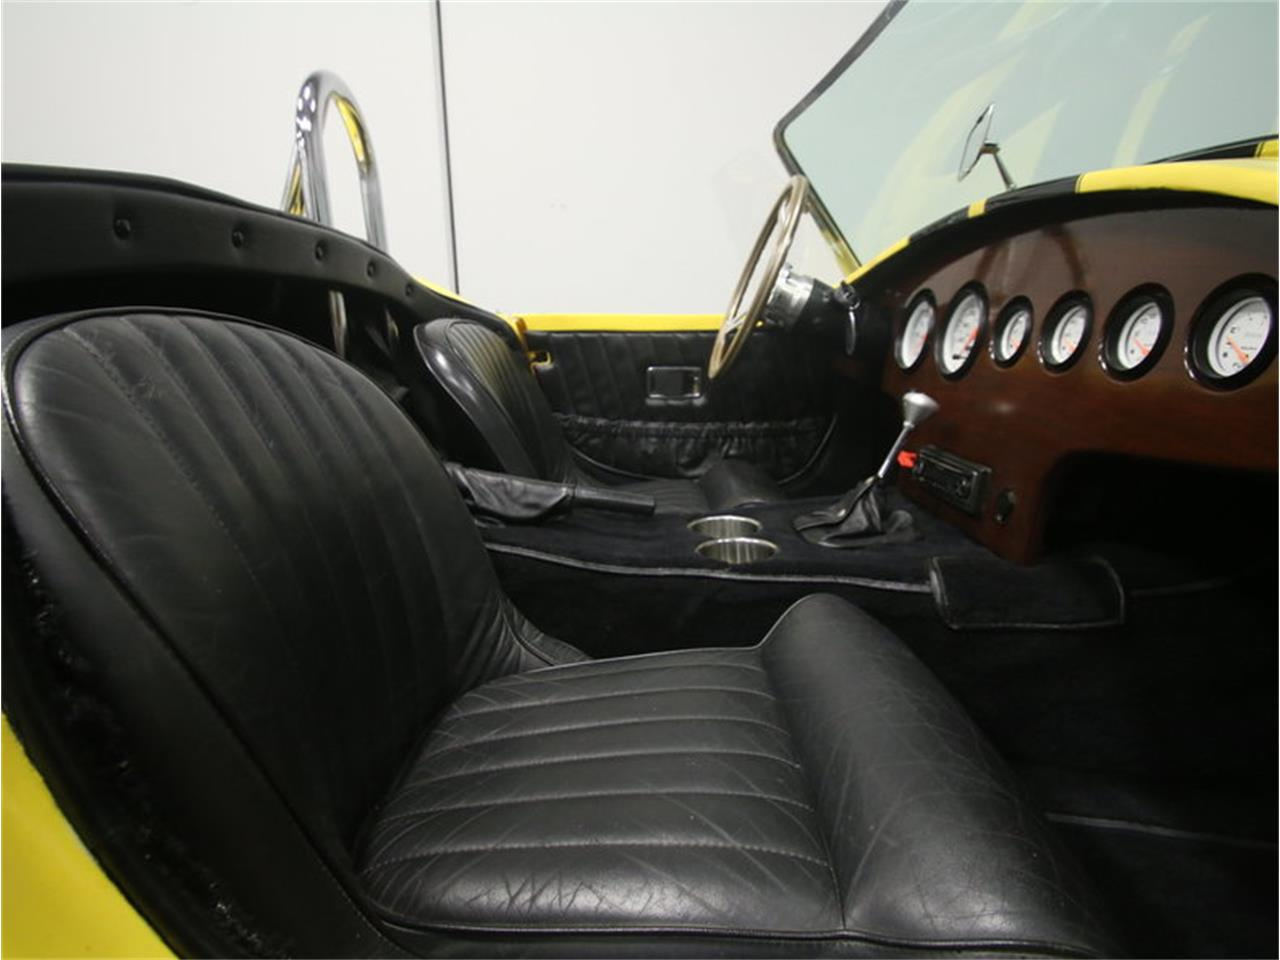 Large Picture of 1966 Shelby Cobra Replica - $34,995.00 Offered by Streetside Classics - Atlanta - LAUM